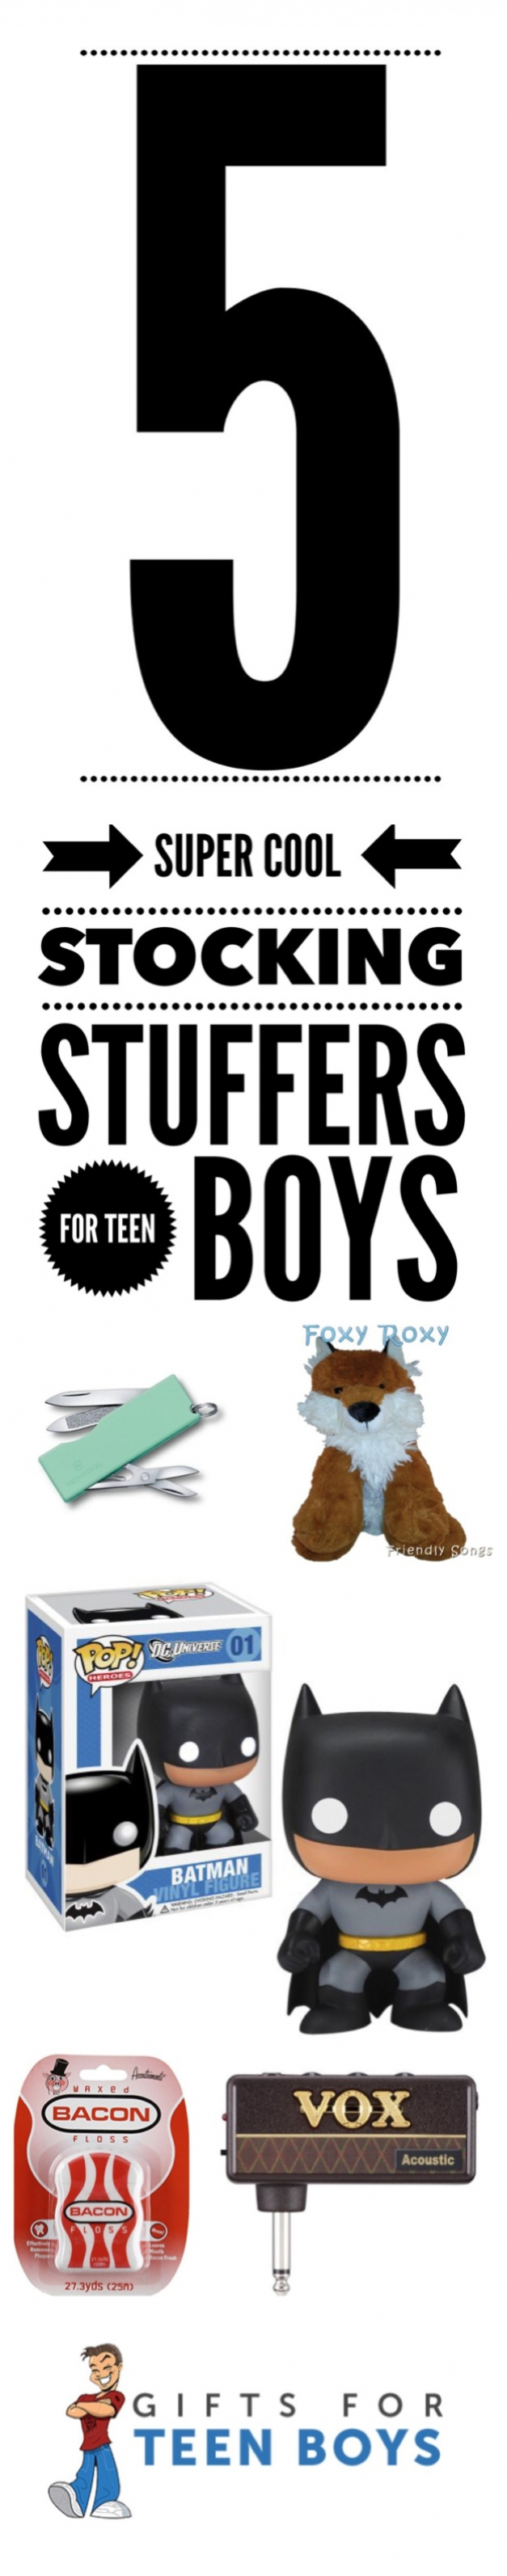 5 Super Cool Stocking Stuffers for Teen Boys - Gifts for Teen Boys